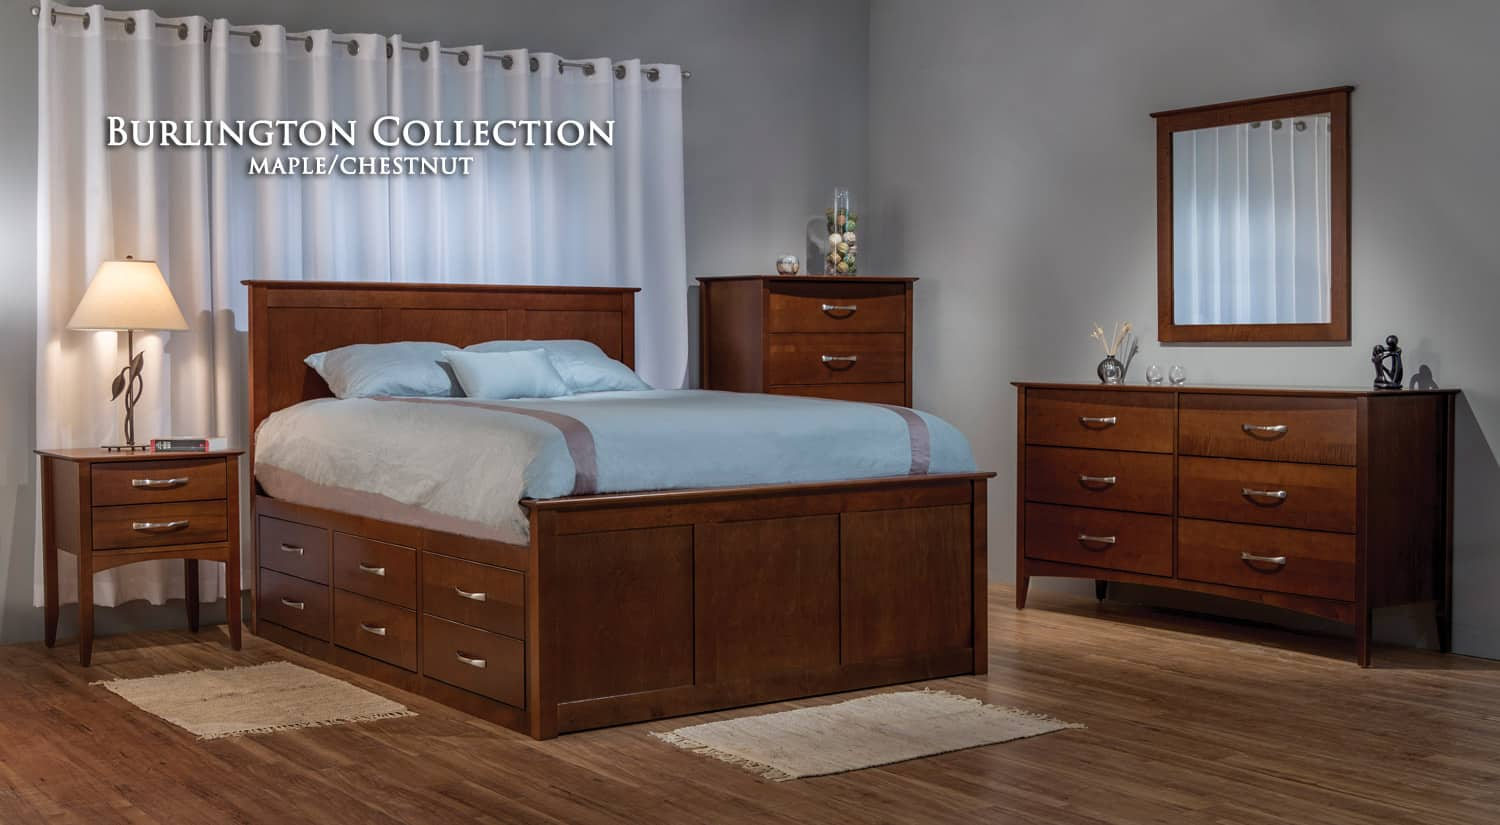 Exceptional Solid Wood Furniture | Bedroom Furniture, Cherry Furniture | Vermont Made  Furniture | Made In USA